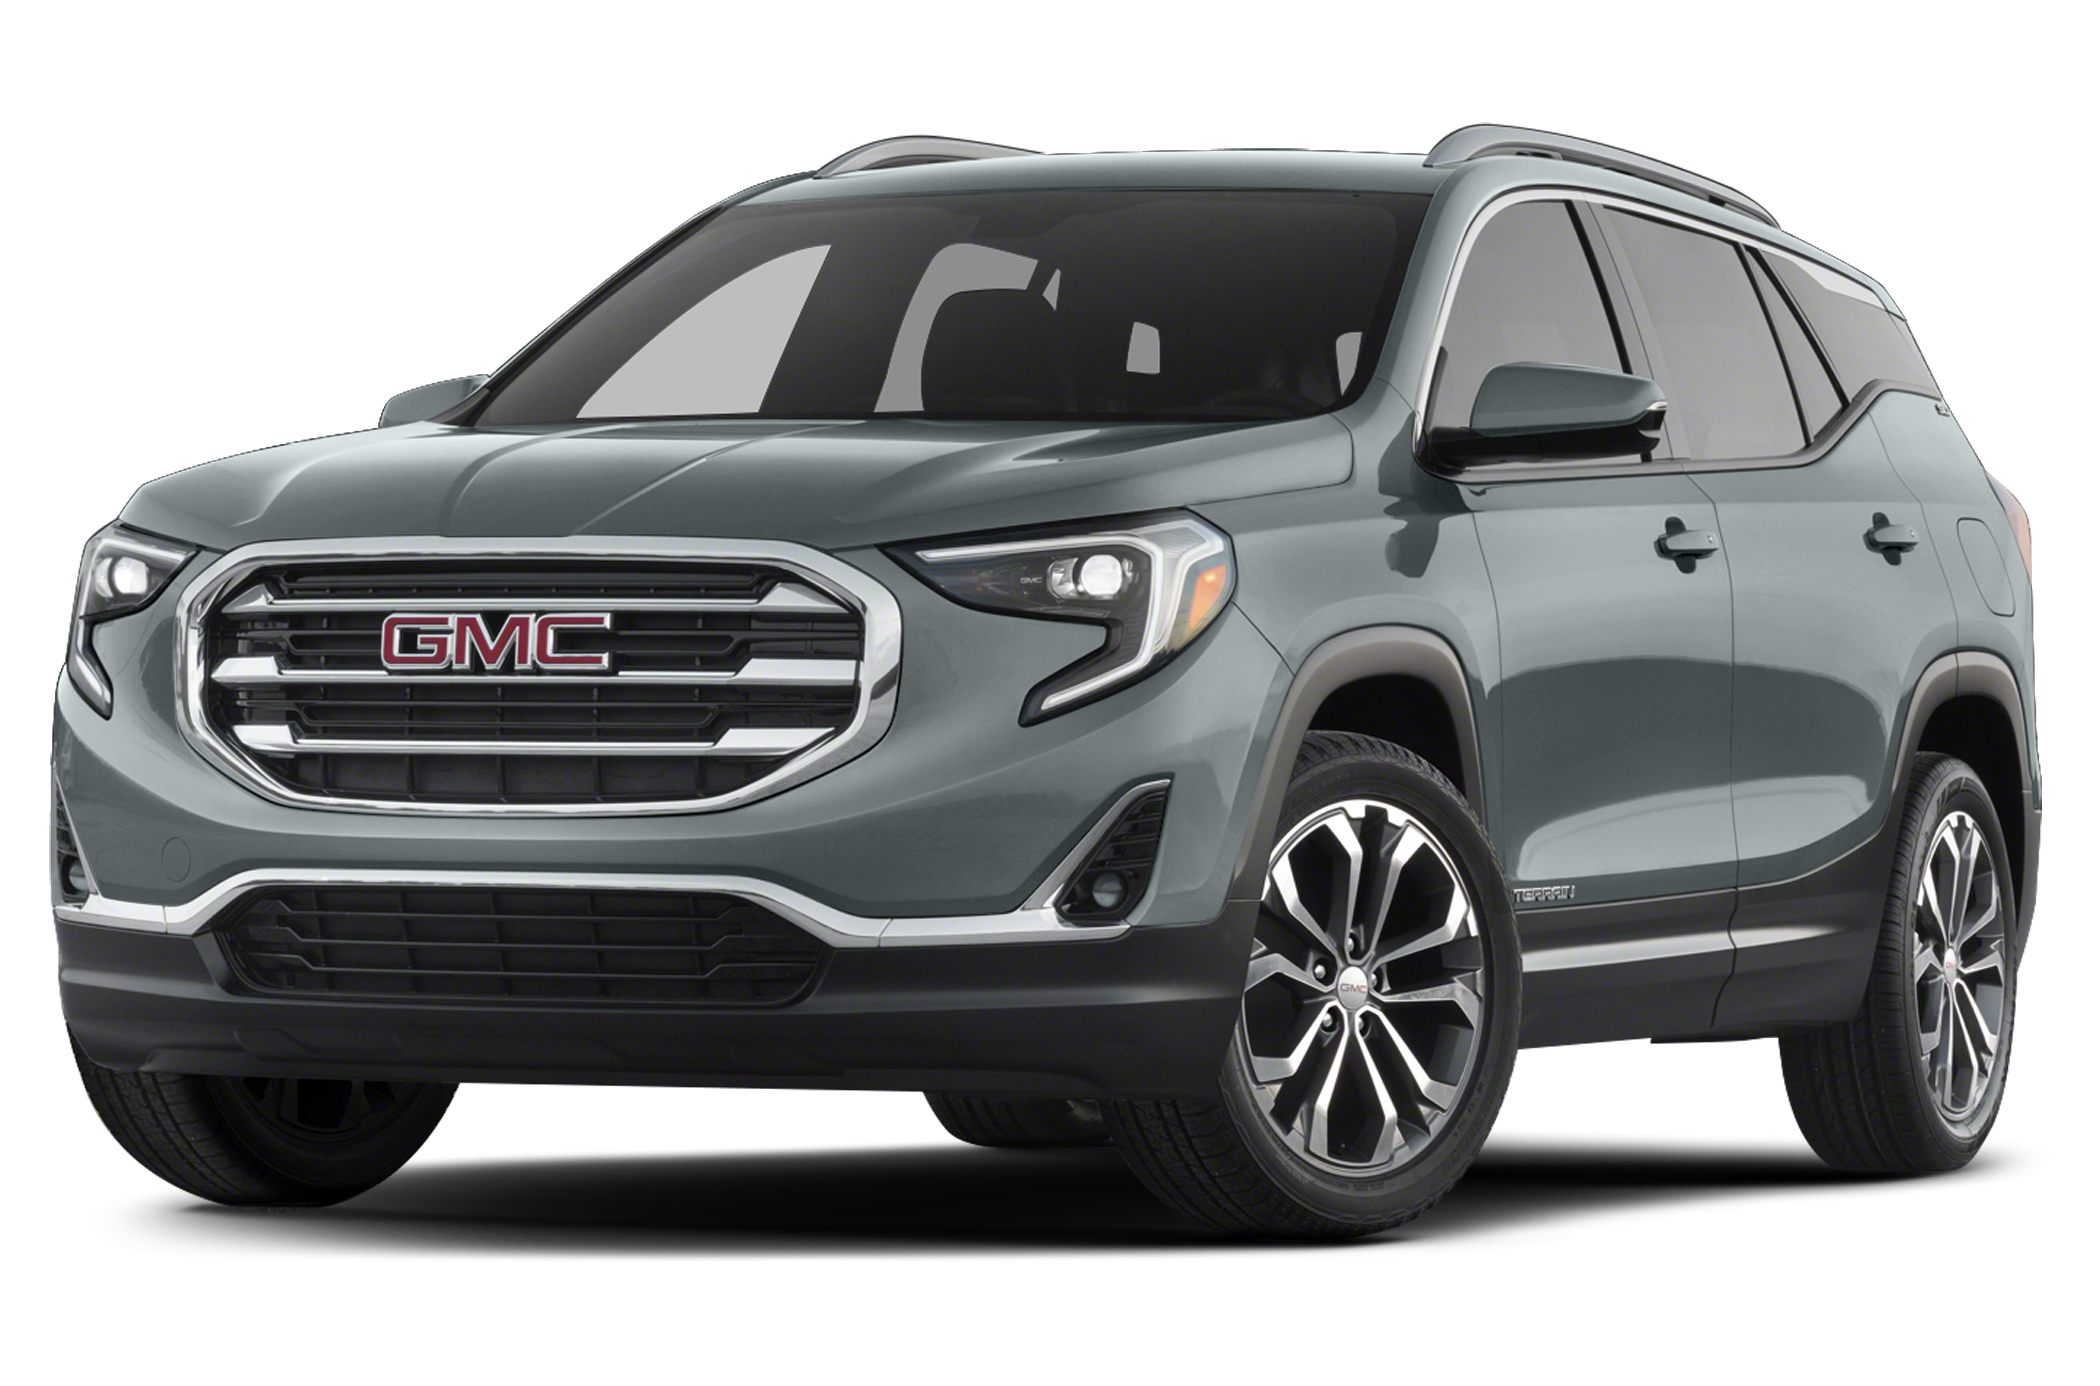 2018 gmc white terrain. delighful terrain photo gallery inside 2018 gmc white terrain